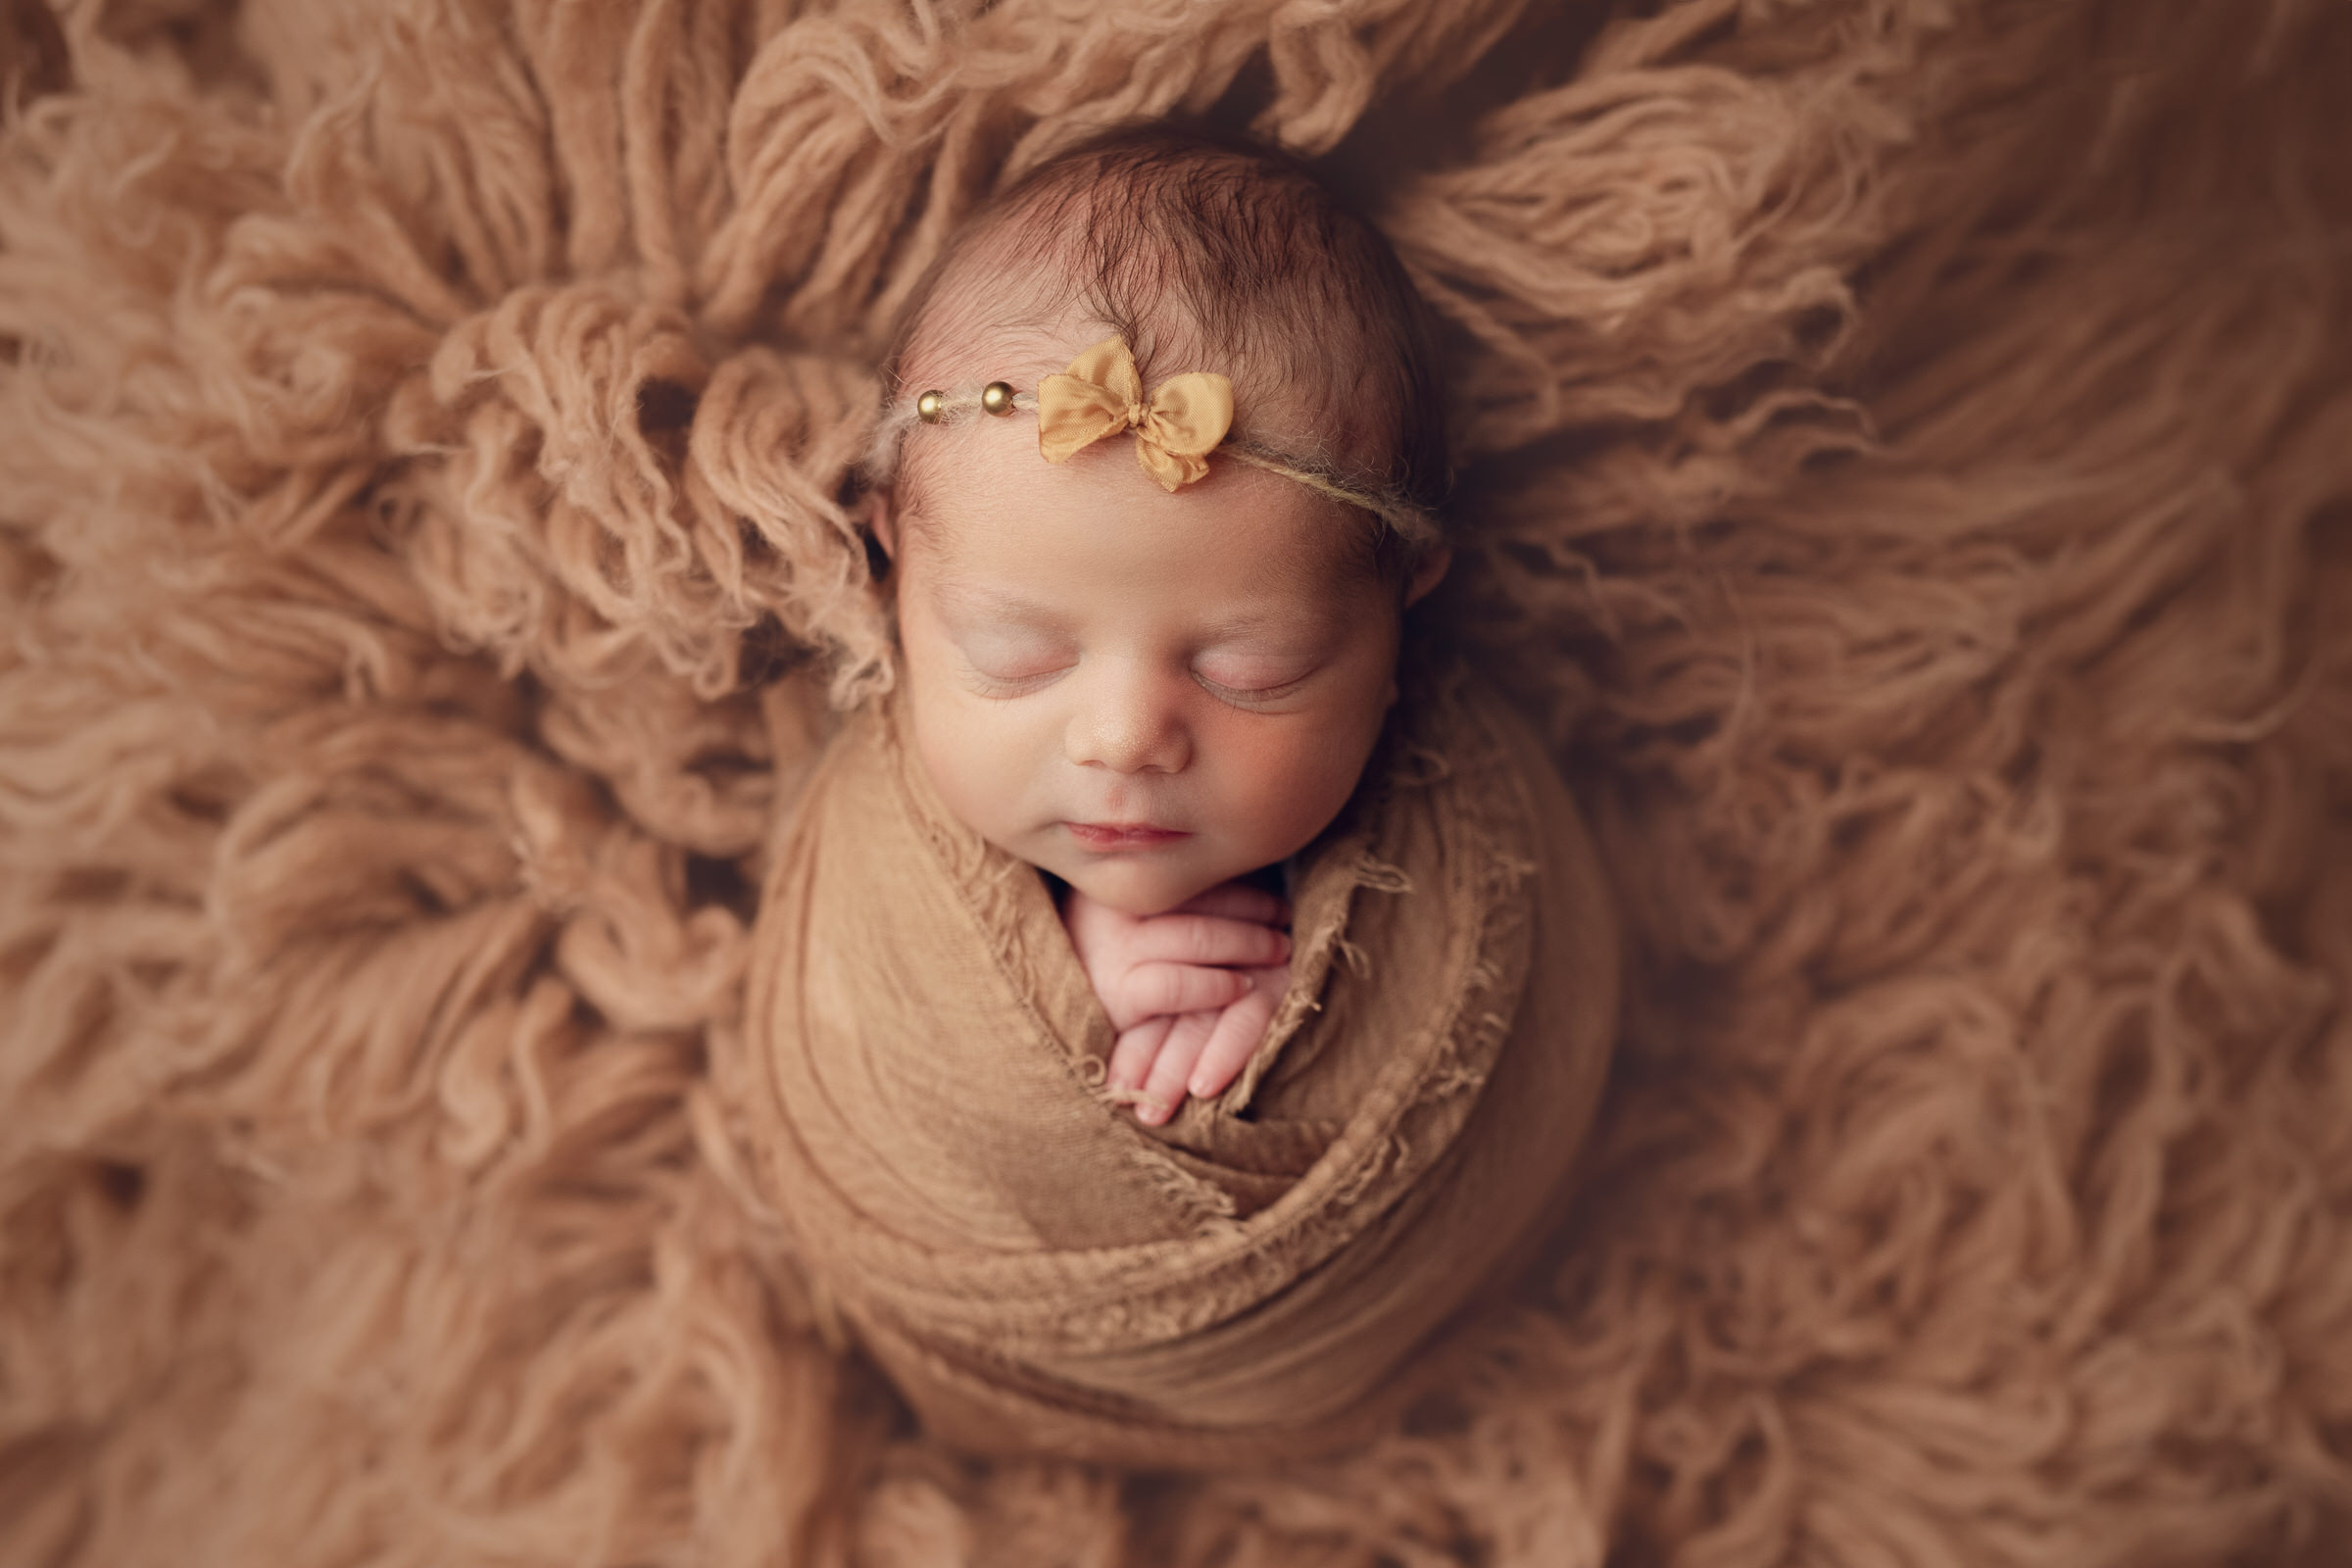 baby wrapped up on brown fur rug